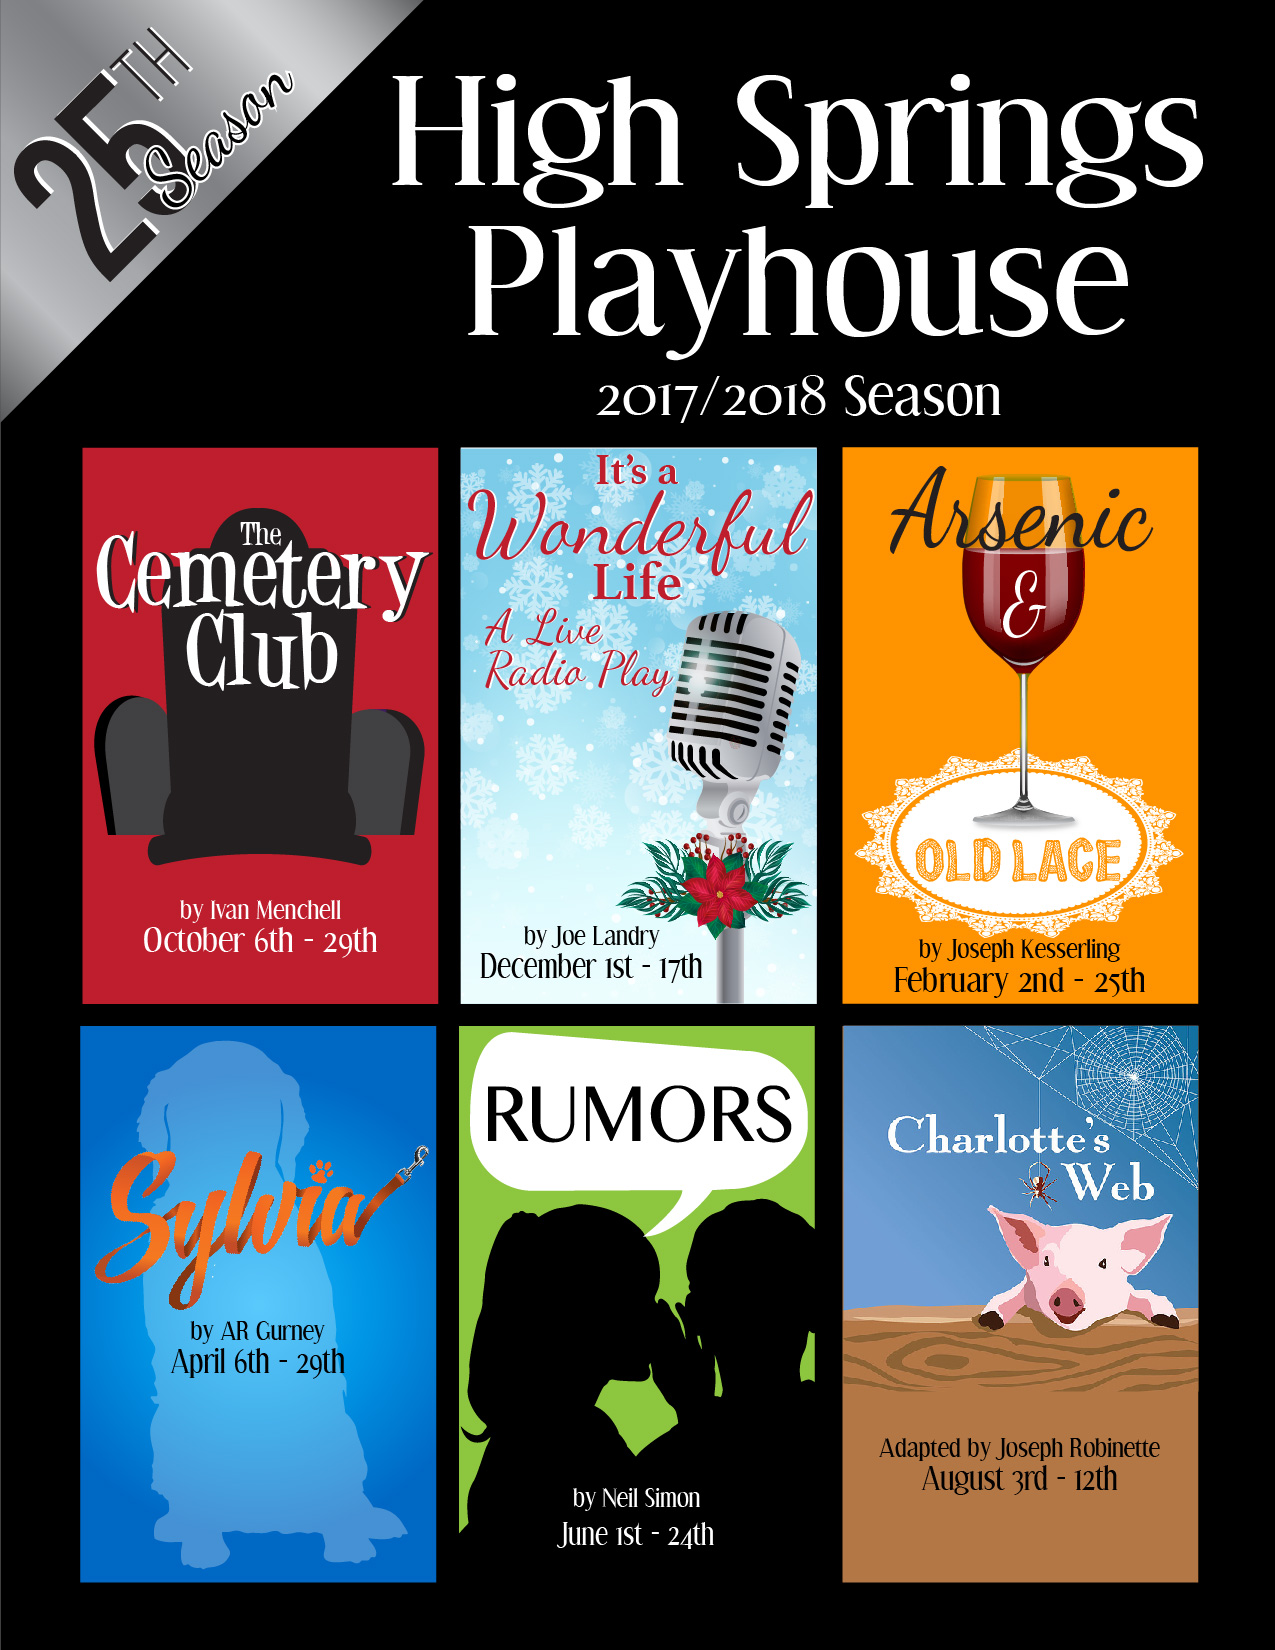 High Springs Playhouse